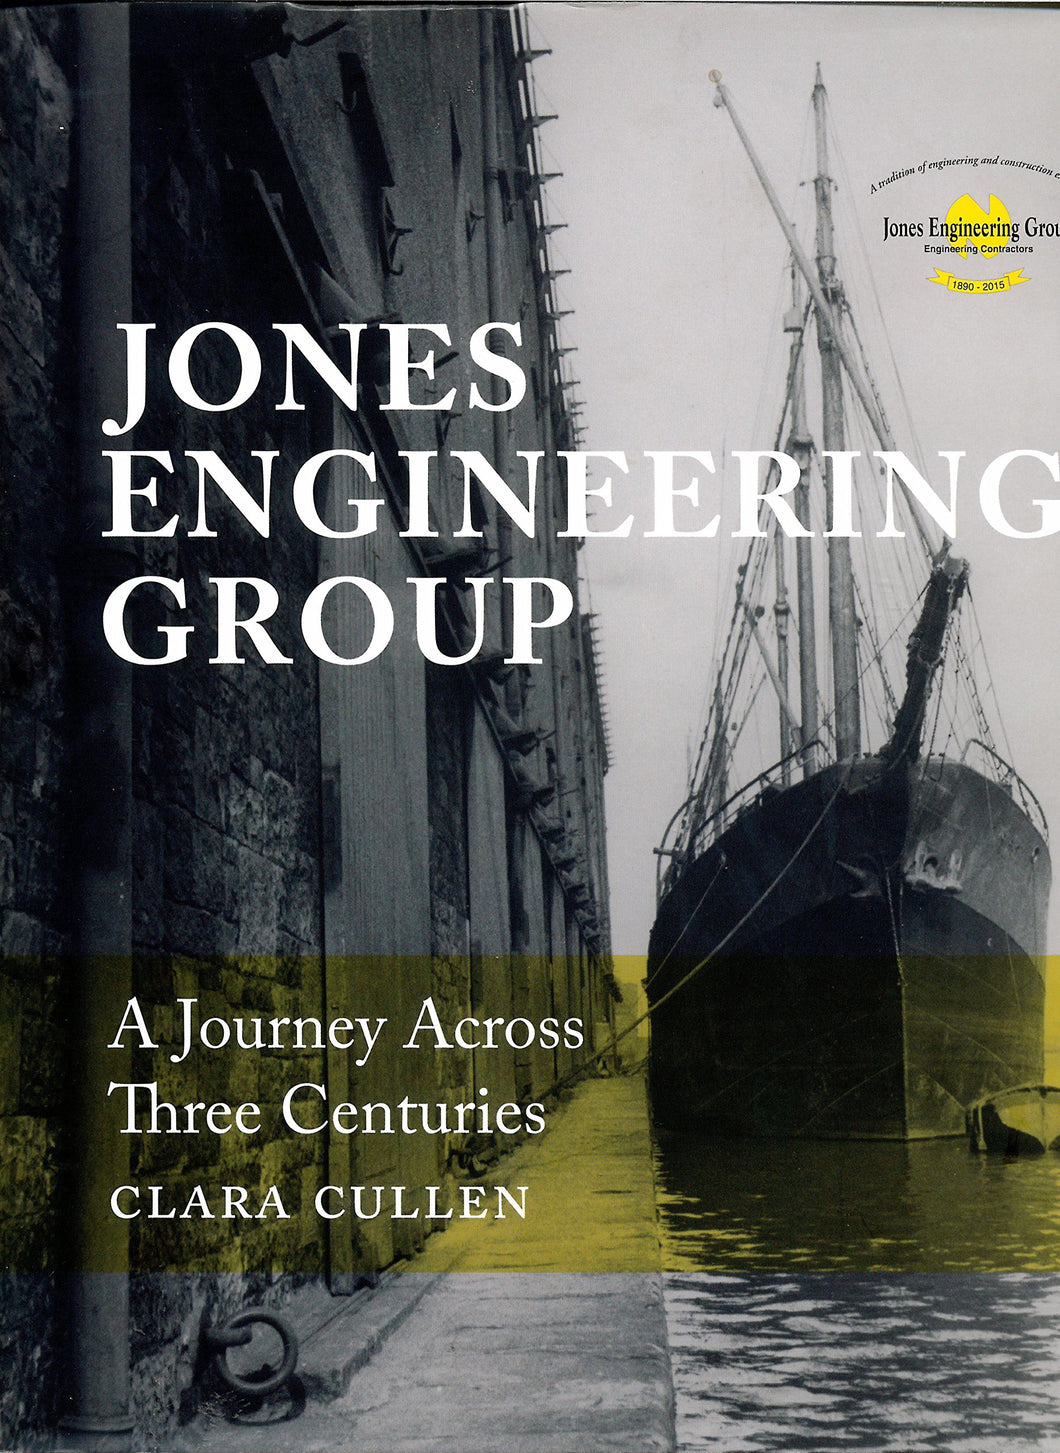 Jones Engineering Group: A Journey Across Three Centuries